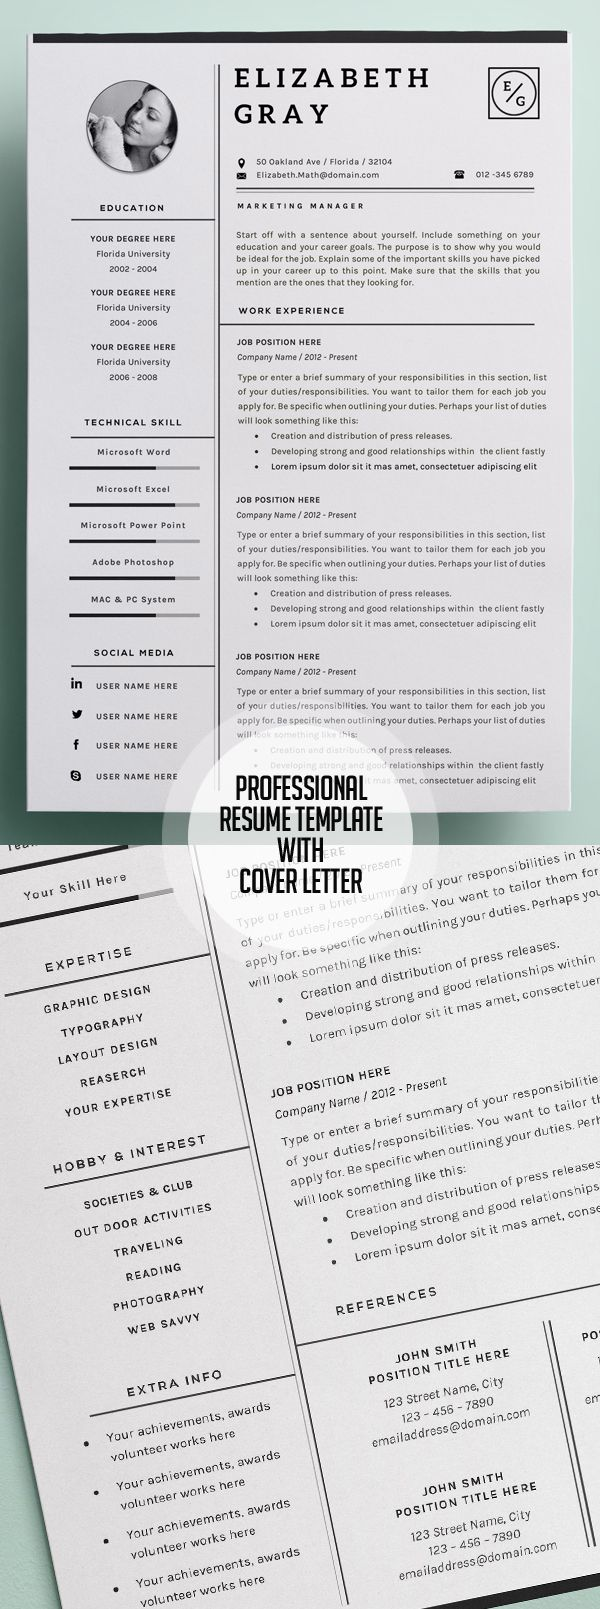 Picnictoimpeachus  Prepossessing  Resume Ideas On Pinterest  Resume Resume Templates And  With Excellent Professional And Modern Resume Template With Page Cover Cvtemplate With Delectable Cv Or Resume Also Linked In Resume In Addition Retail Store Manager Resume And Resume For A Job As Well As Sample Of A Resume Additionally Good Objectives For A Resume From Pinterestcom With Picnictoimpeachus  Excellent  Resume Ideas On Pinterest  Resume Resume Templates And  With Delectable Professional And Modern Resume Template With Page Cover Cvtemplate And Prepossessing Cv Or Resume Also Linked In Resume In Addition Retail Store Manager Resume From Pinterestcom